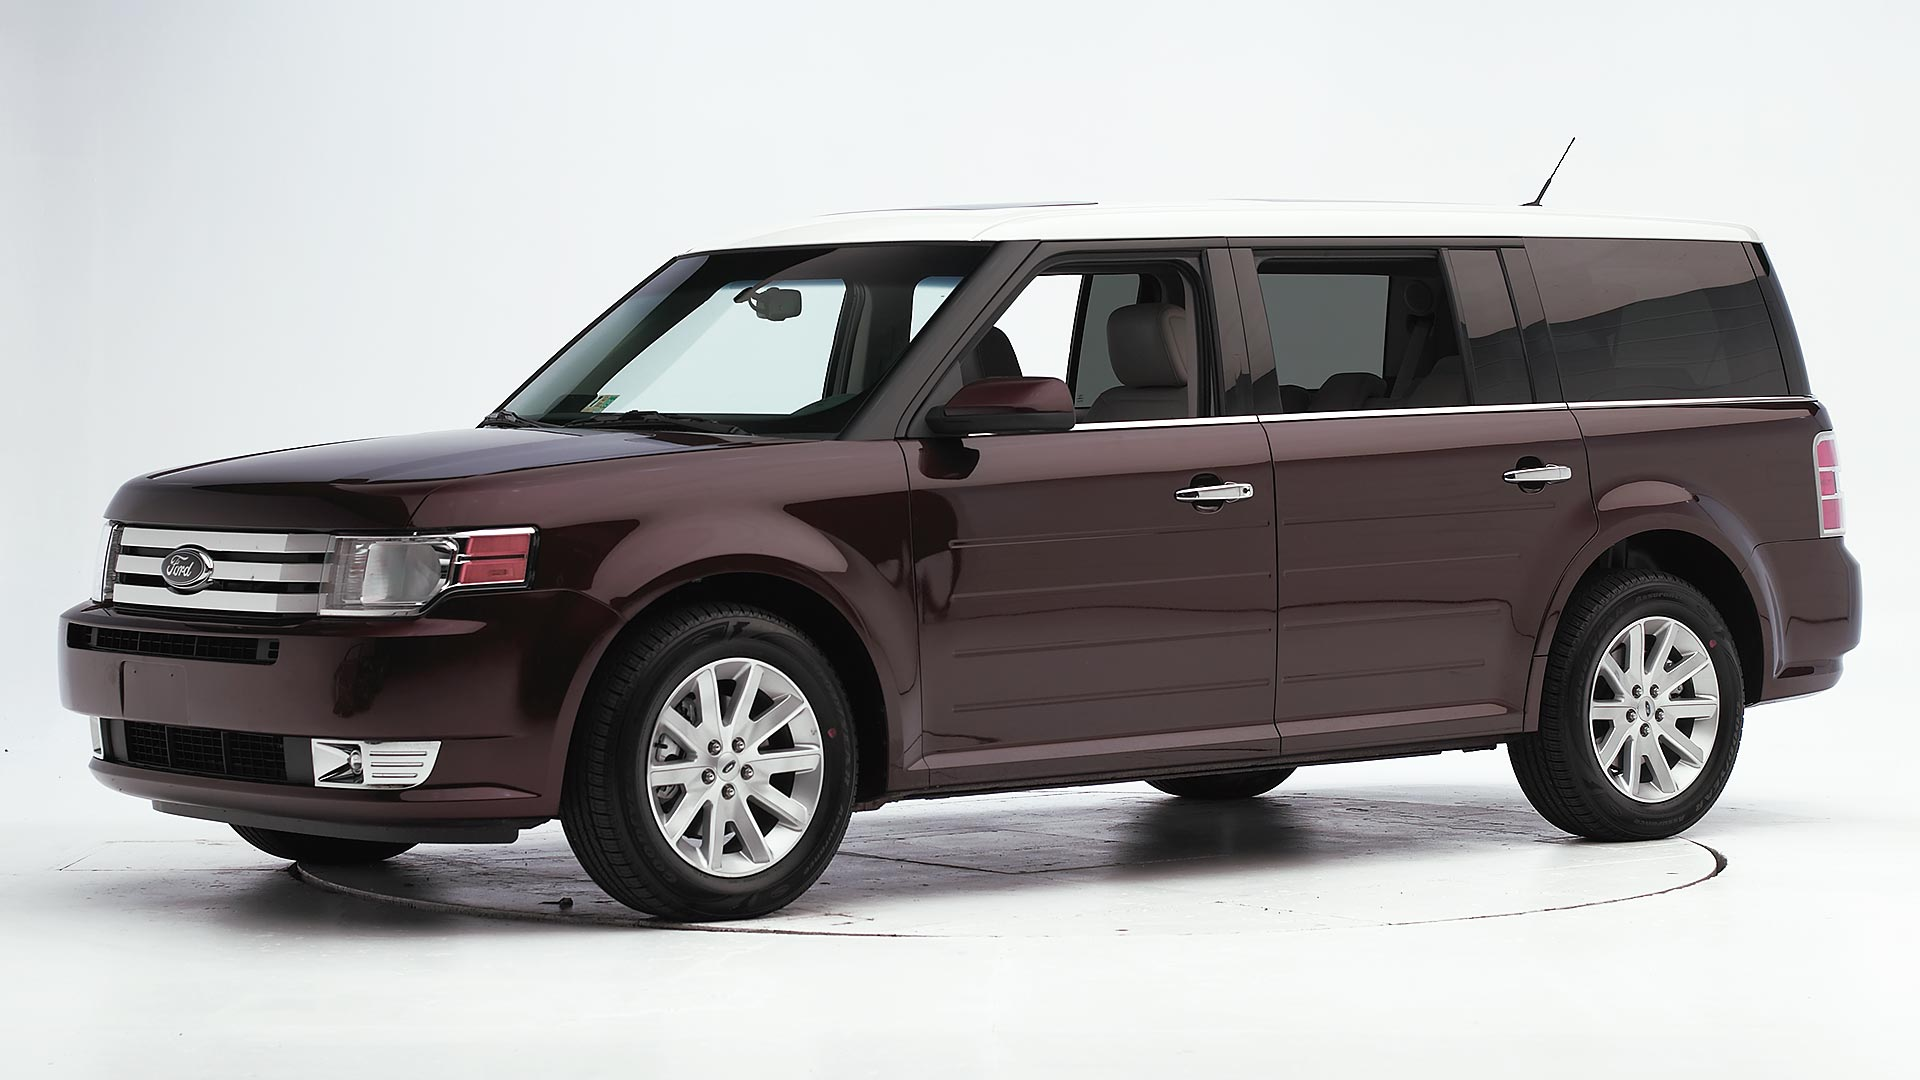 2011 Ford Flex 4-door SUV